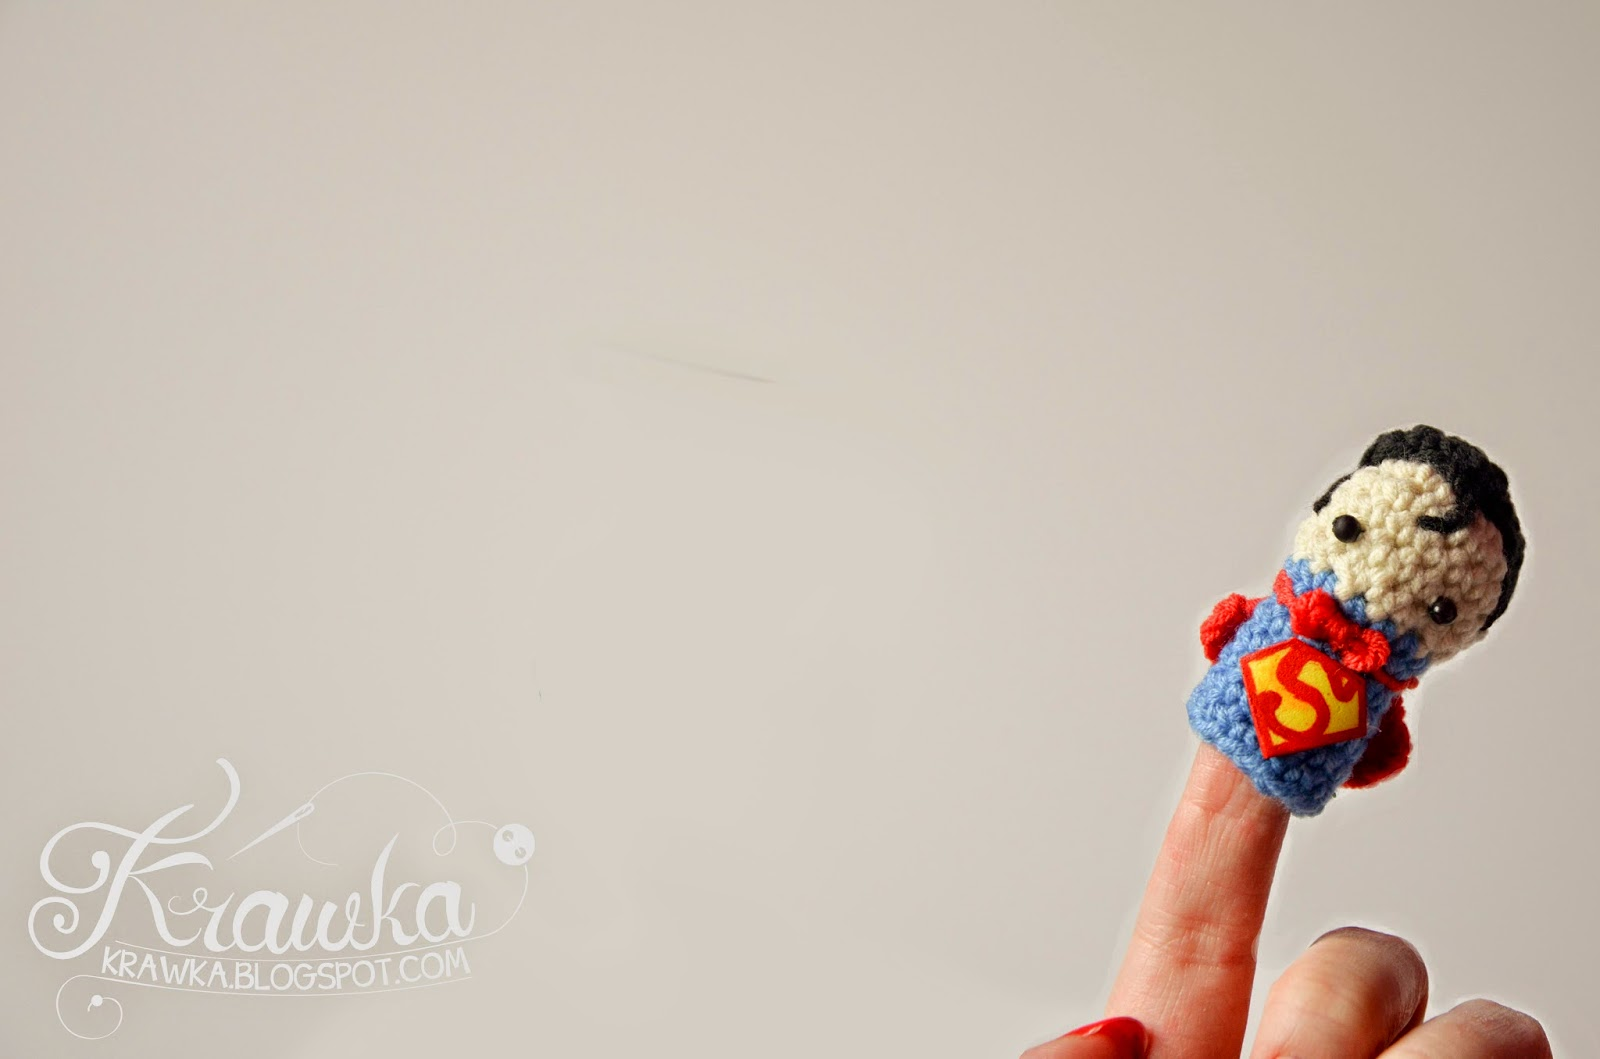 Krawka: Desktop wallpaper with light background and funny character - superman in front